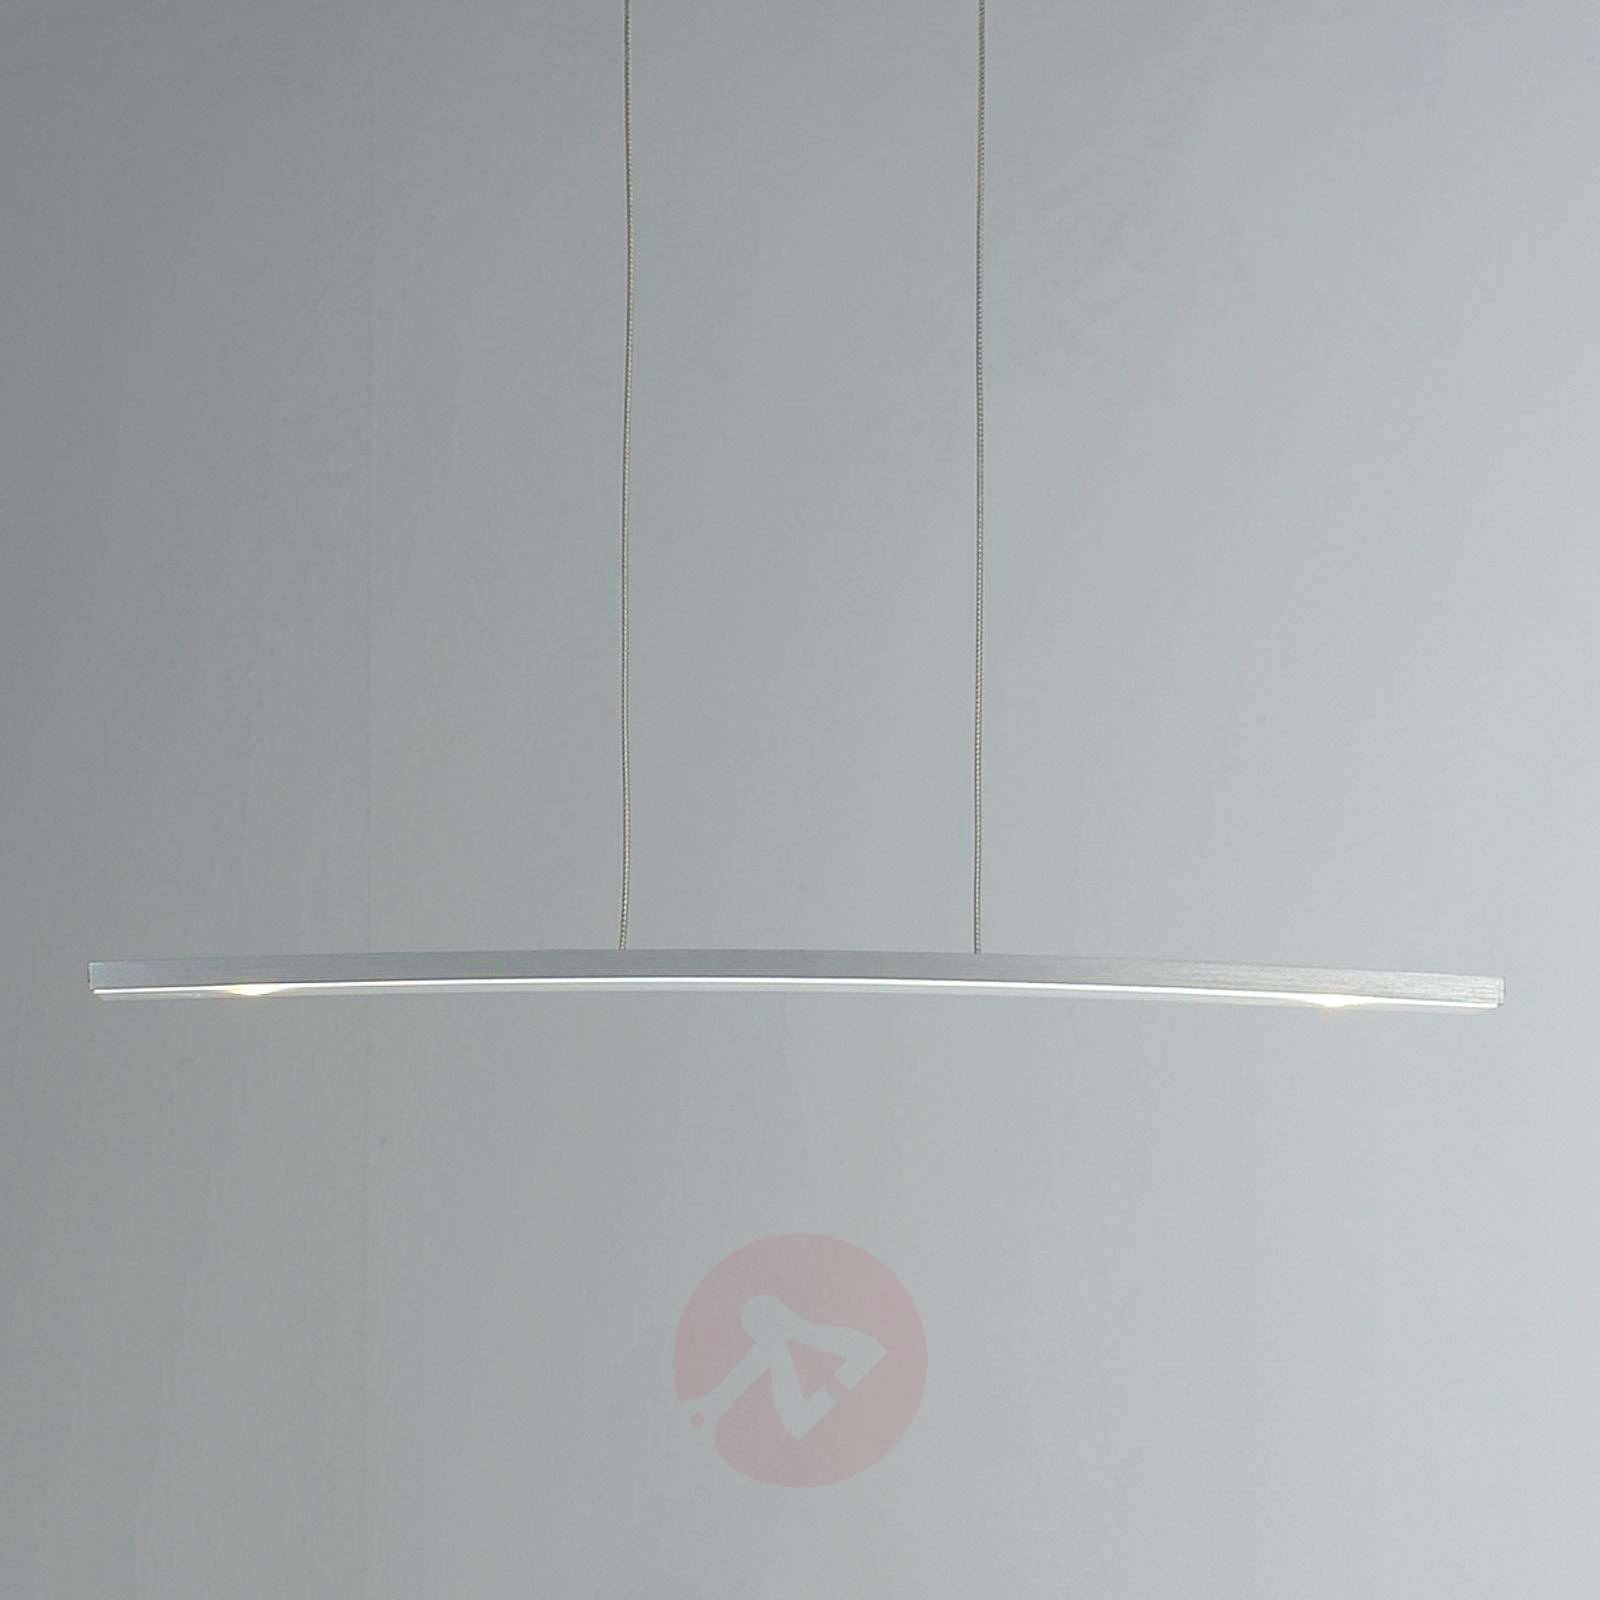 Suspension LED More sobre et moderne-1556136-01